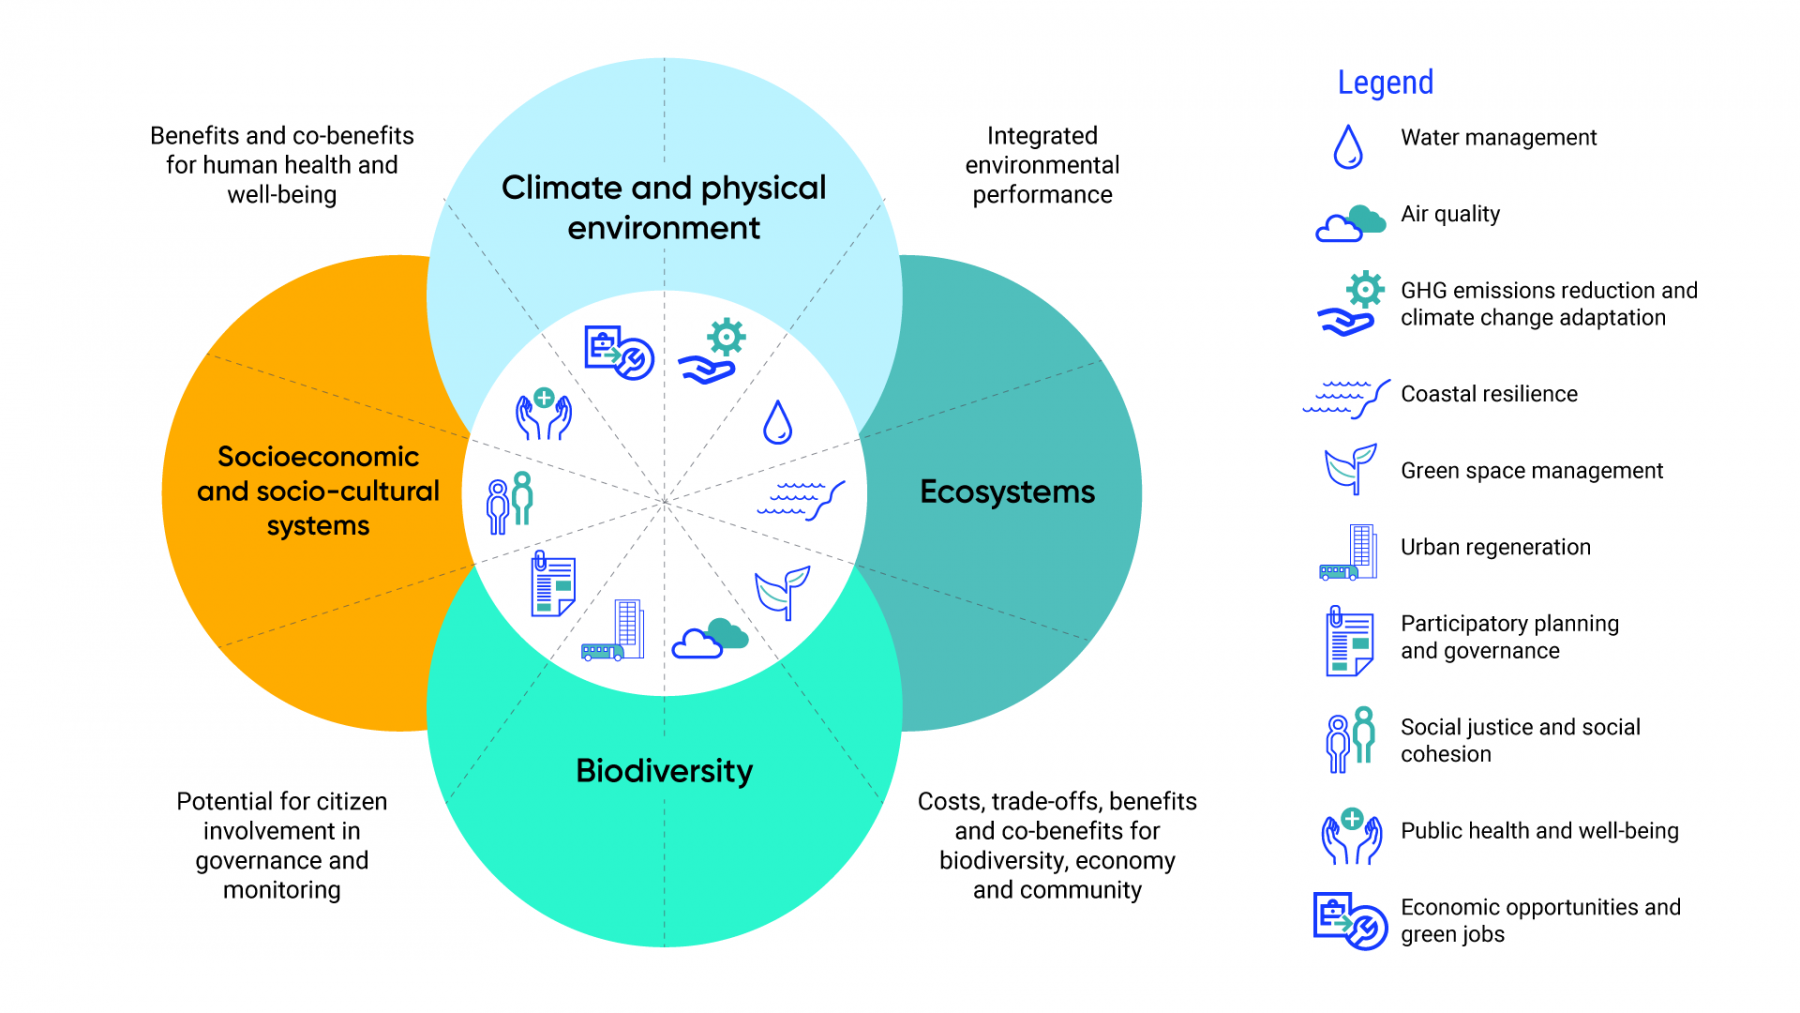 Diagram illustrates how ecosystem services are co-produced by ecosystems, biodiversity, socio-economic and socio-cultural systems, and the climate and physical environment. When assessing ecosystem services, the costs, trade-offs, benefits, and co-benefits for biodiversity, the economy, and community should be considered, as well as the potential for citizen's involvement in governance and monitoring, the benefits and co-benefits for human health and well-being, and the integrated environmental performance of the ecosystem.